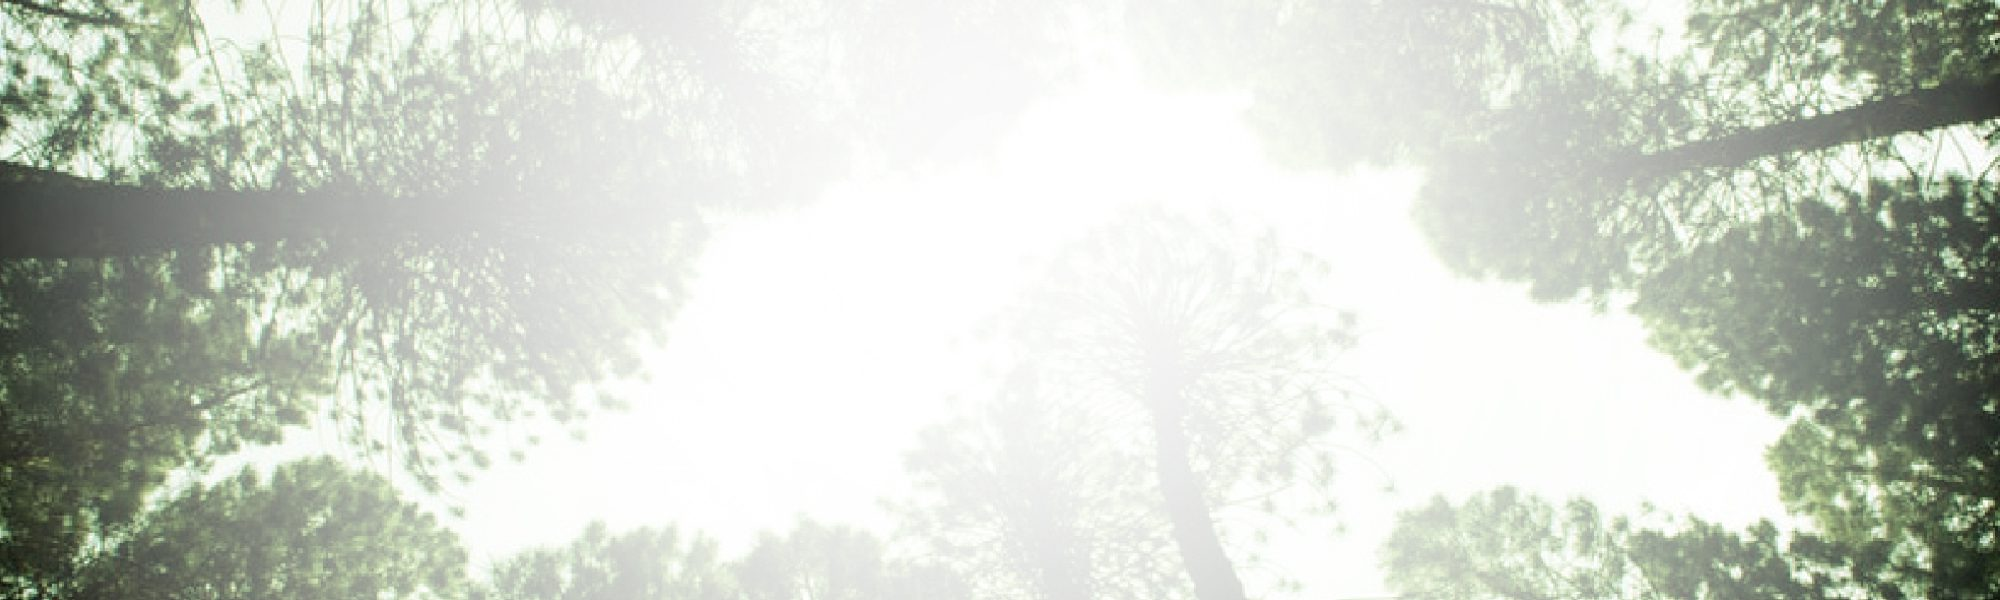 view of a tree canopy from below through the fog for estatements